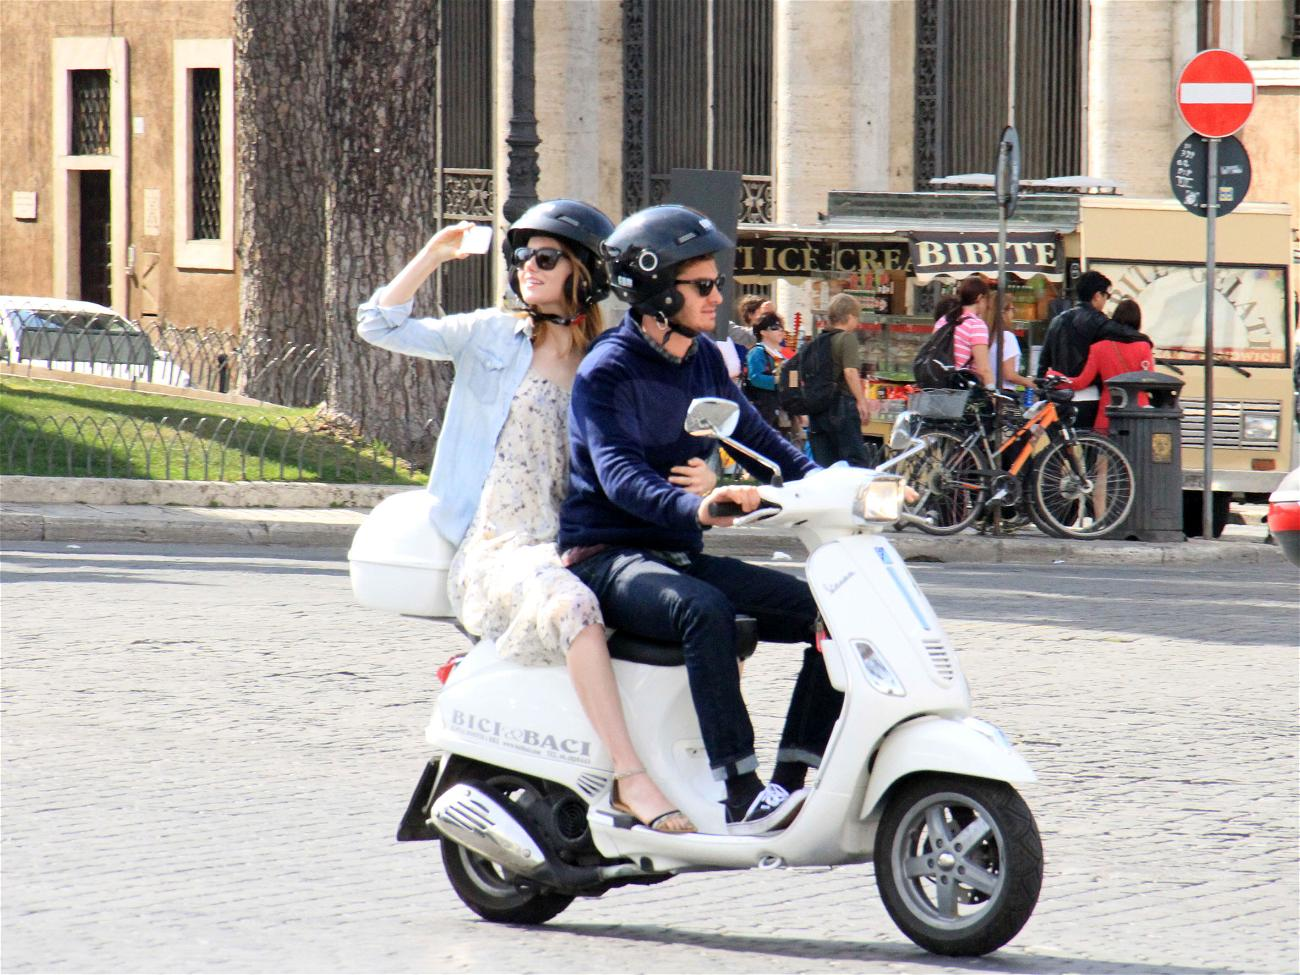 Emma Stone and her boyfriend Andrew Garfield spotted enjoying some romantic alone time on a scooter in Rome